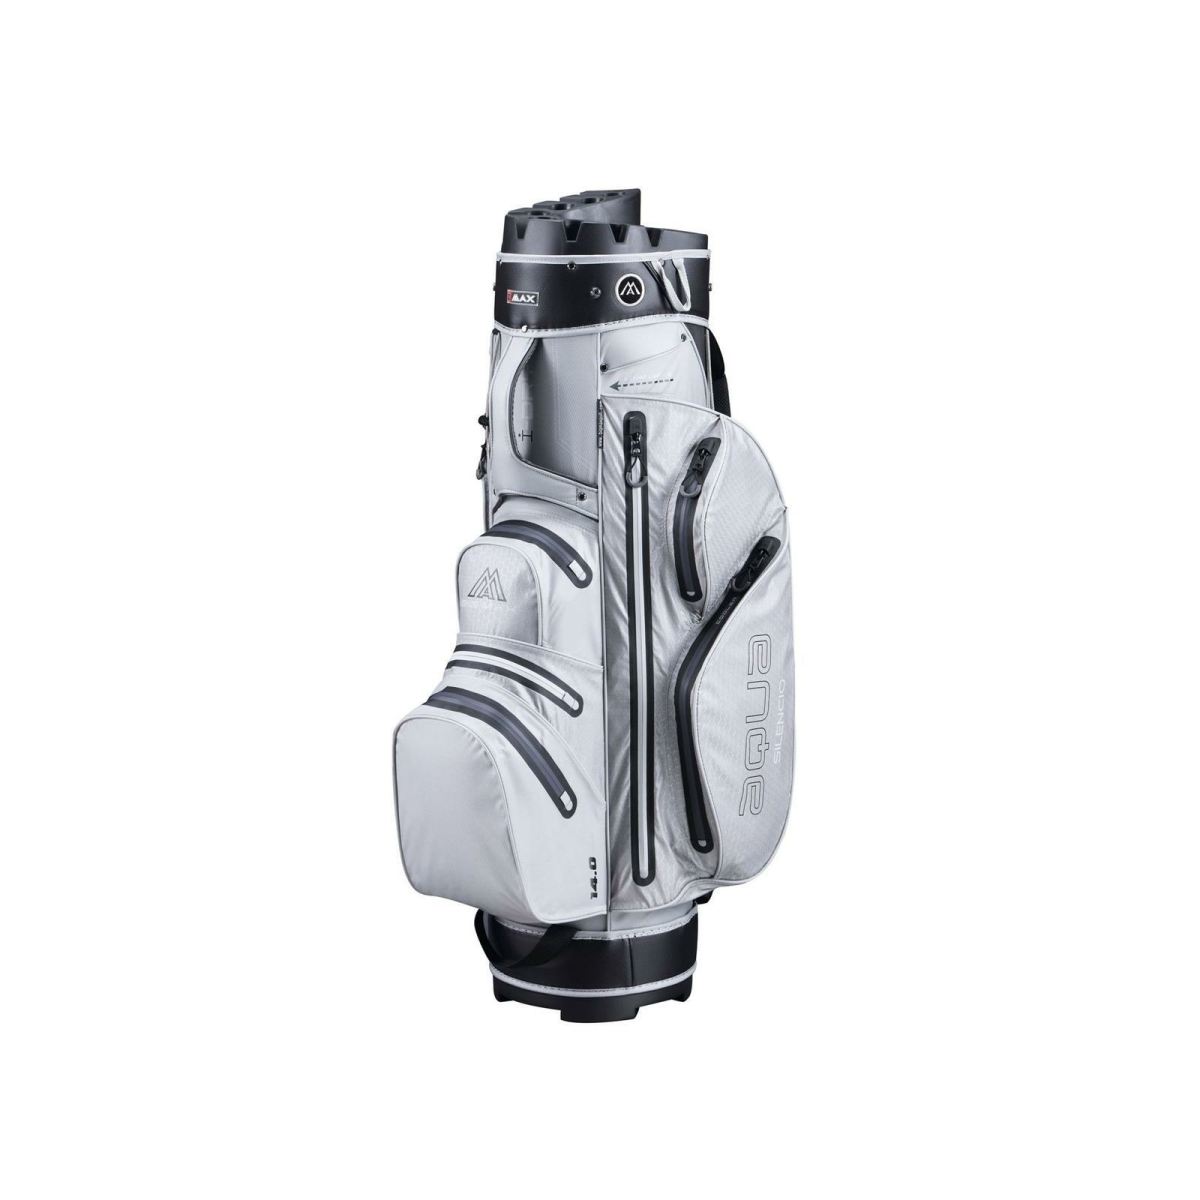 BIG MAX Cartbag Aqua Silencio 3 gray-black